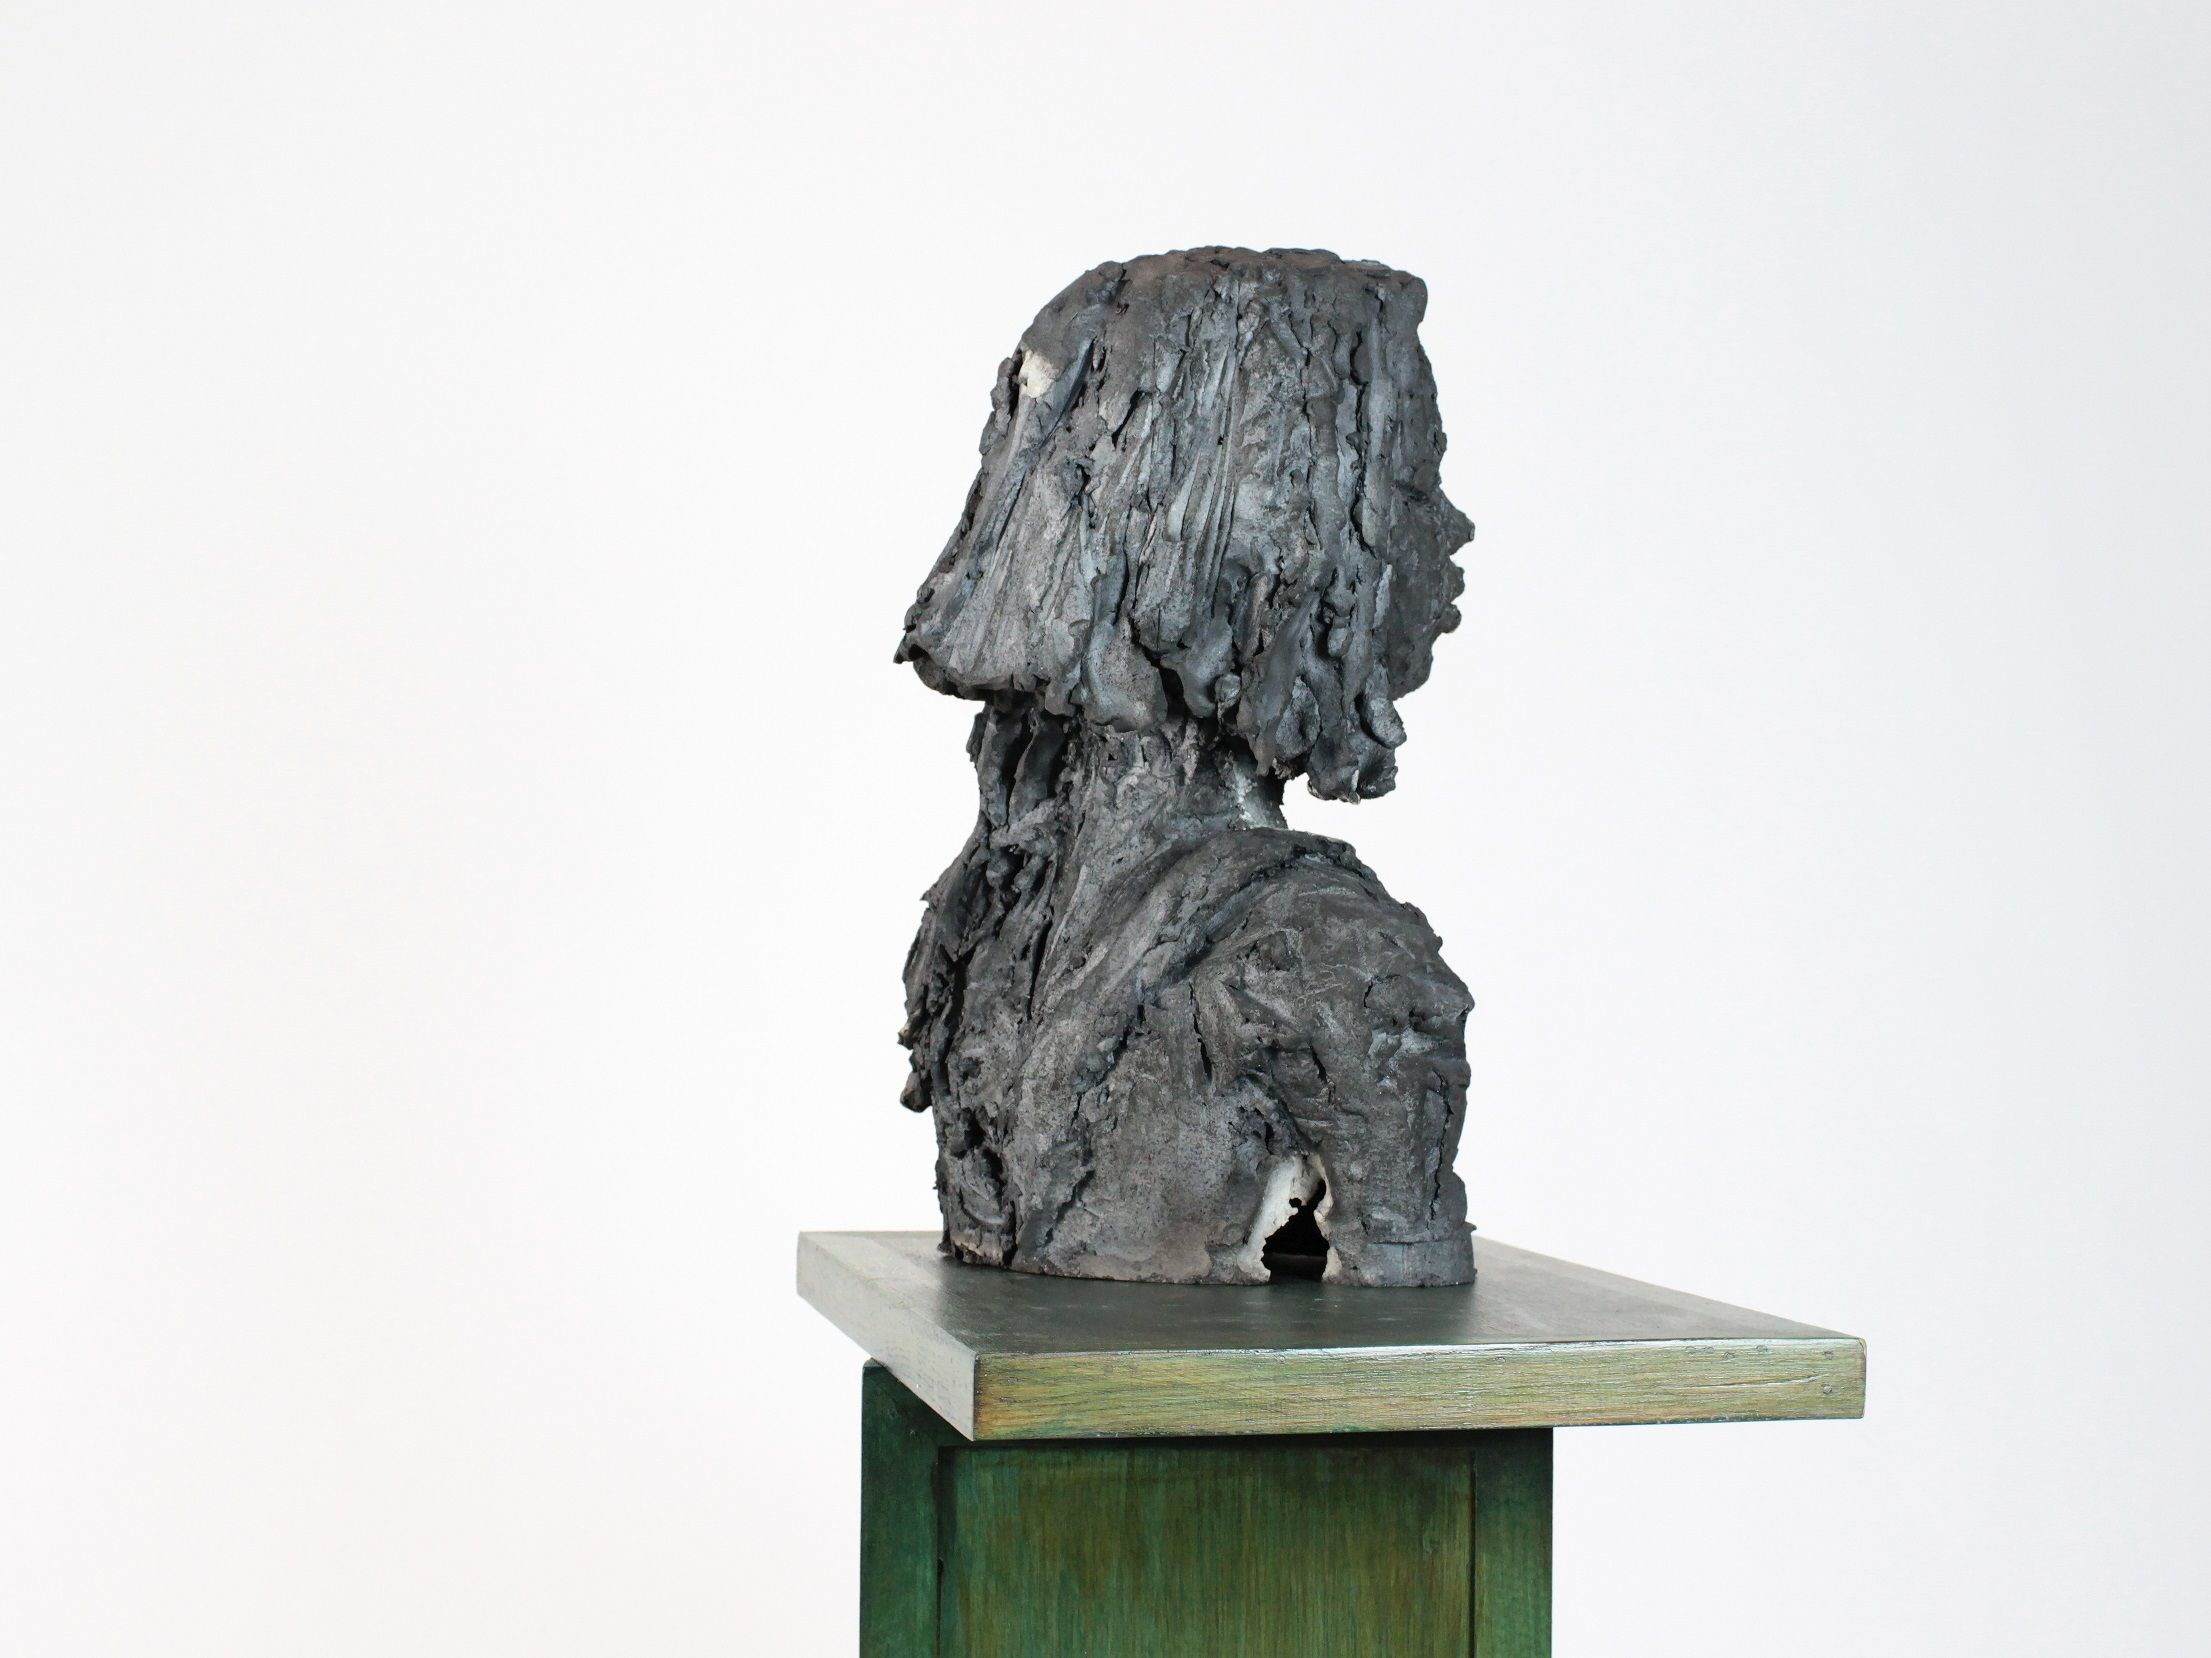 Solo (with Chloé),Cécile Raynal,Sculpture, detail 2